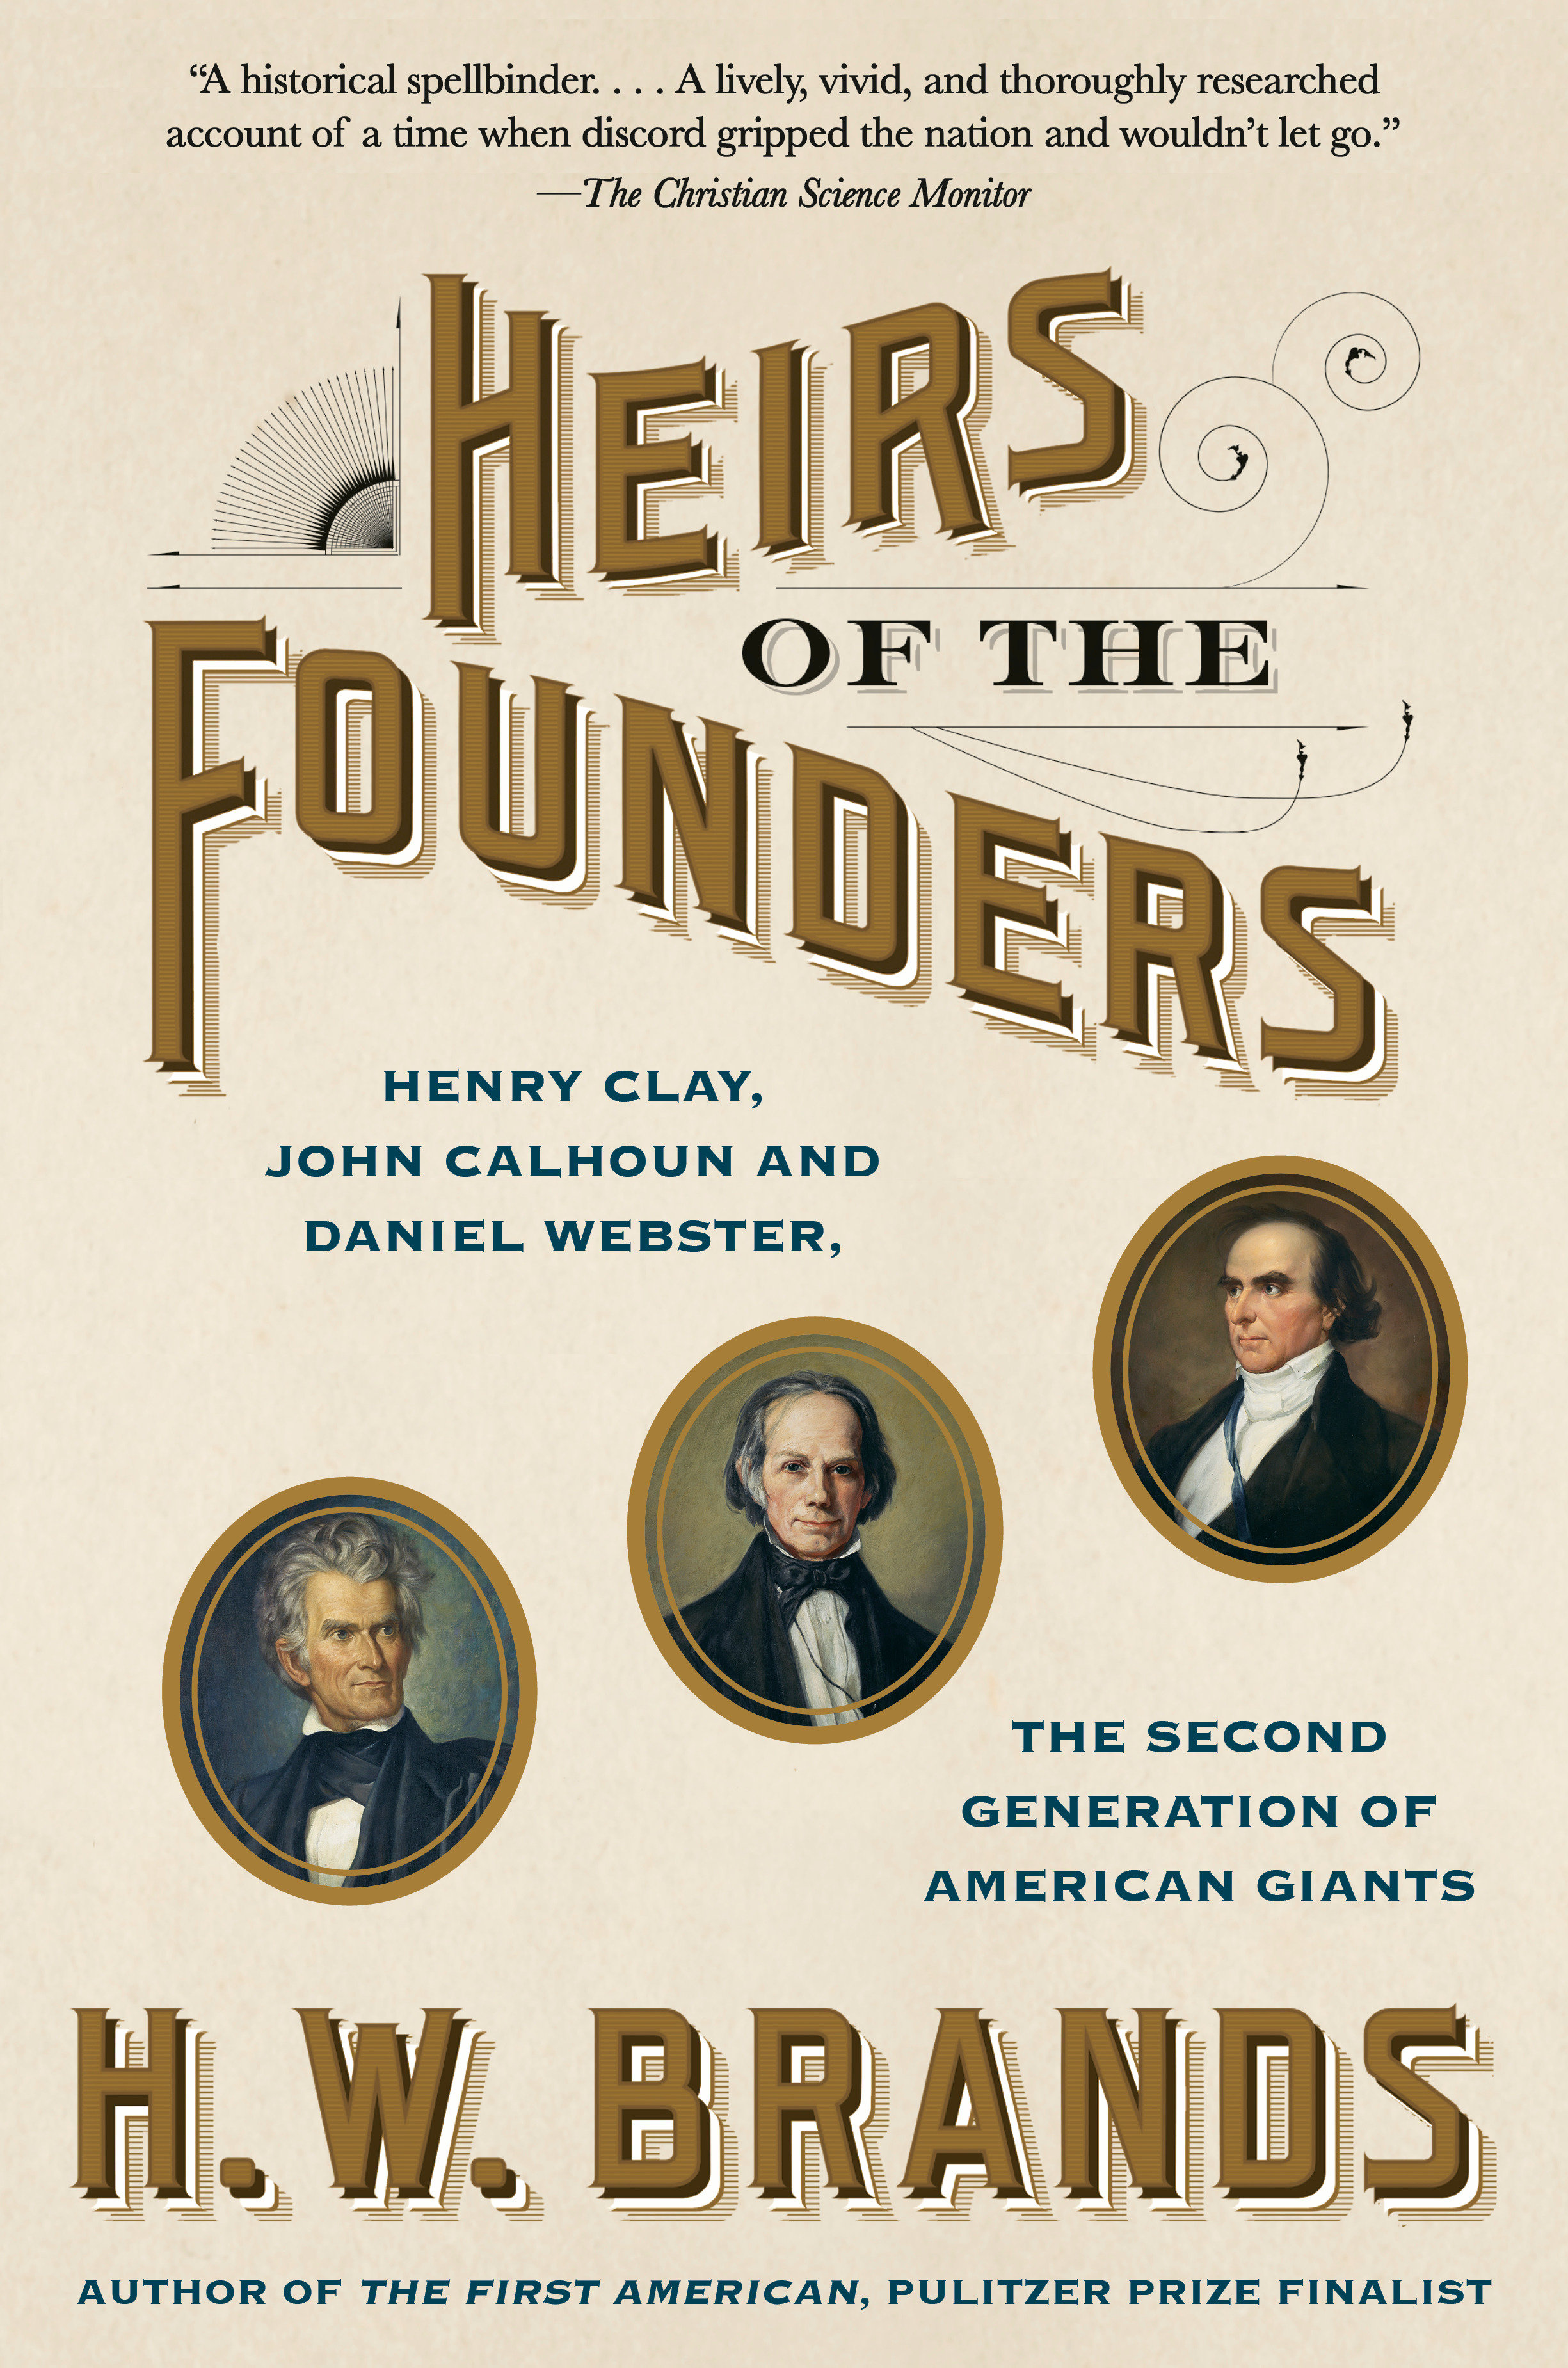 Heirs of the Founders The Epic Rivalry of Henry Clay, John Calhoun and Daniel Webster, the Second Generation of American Giants